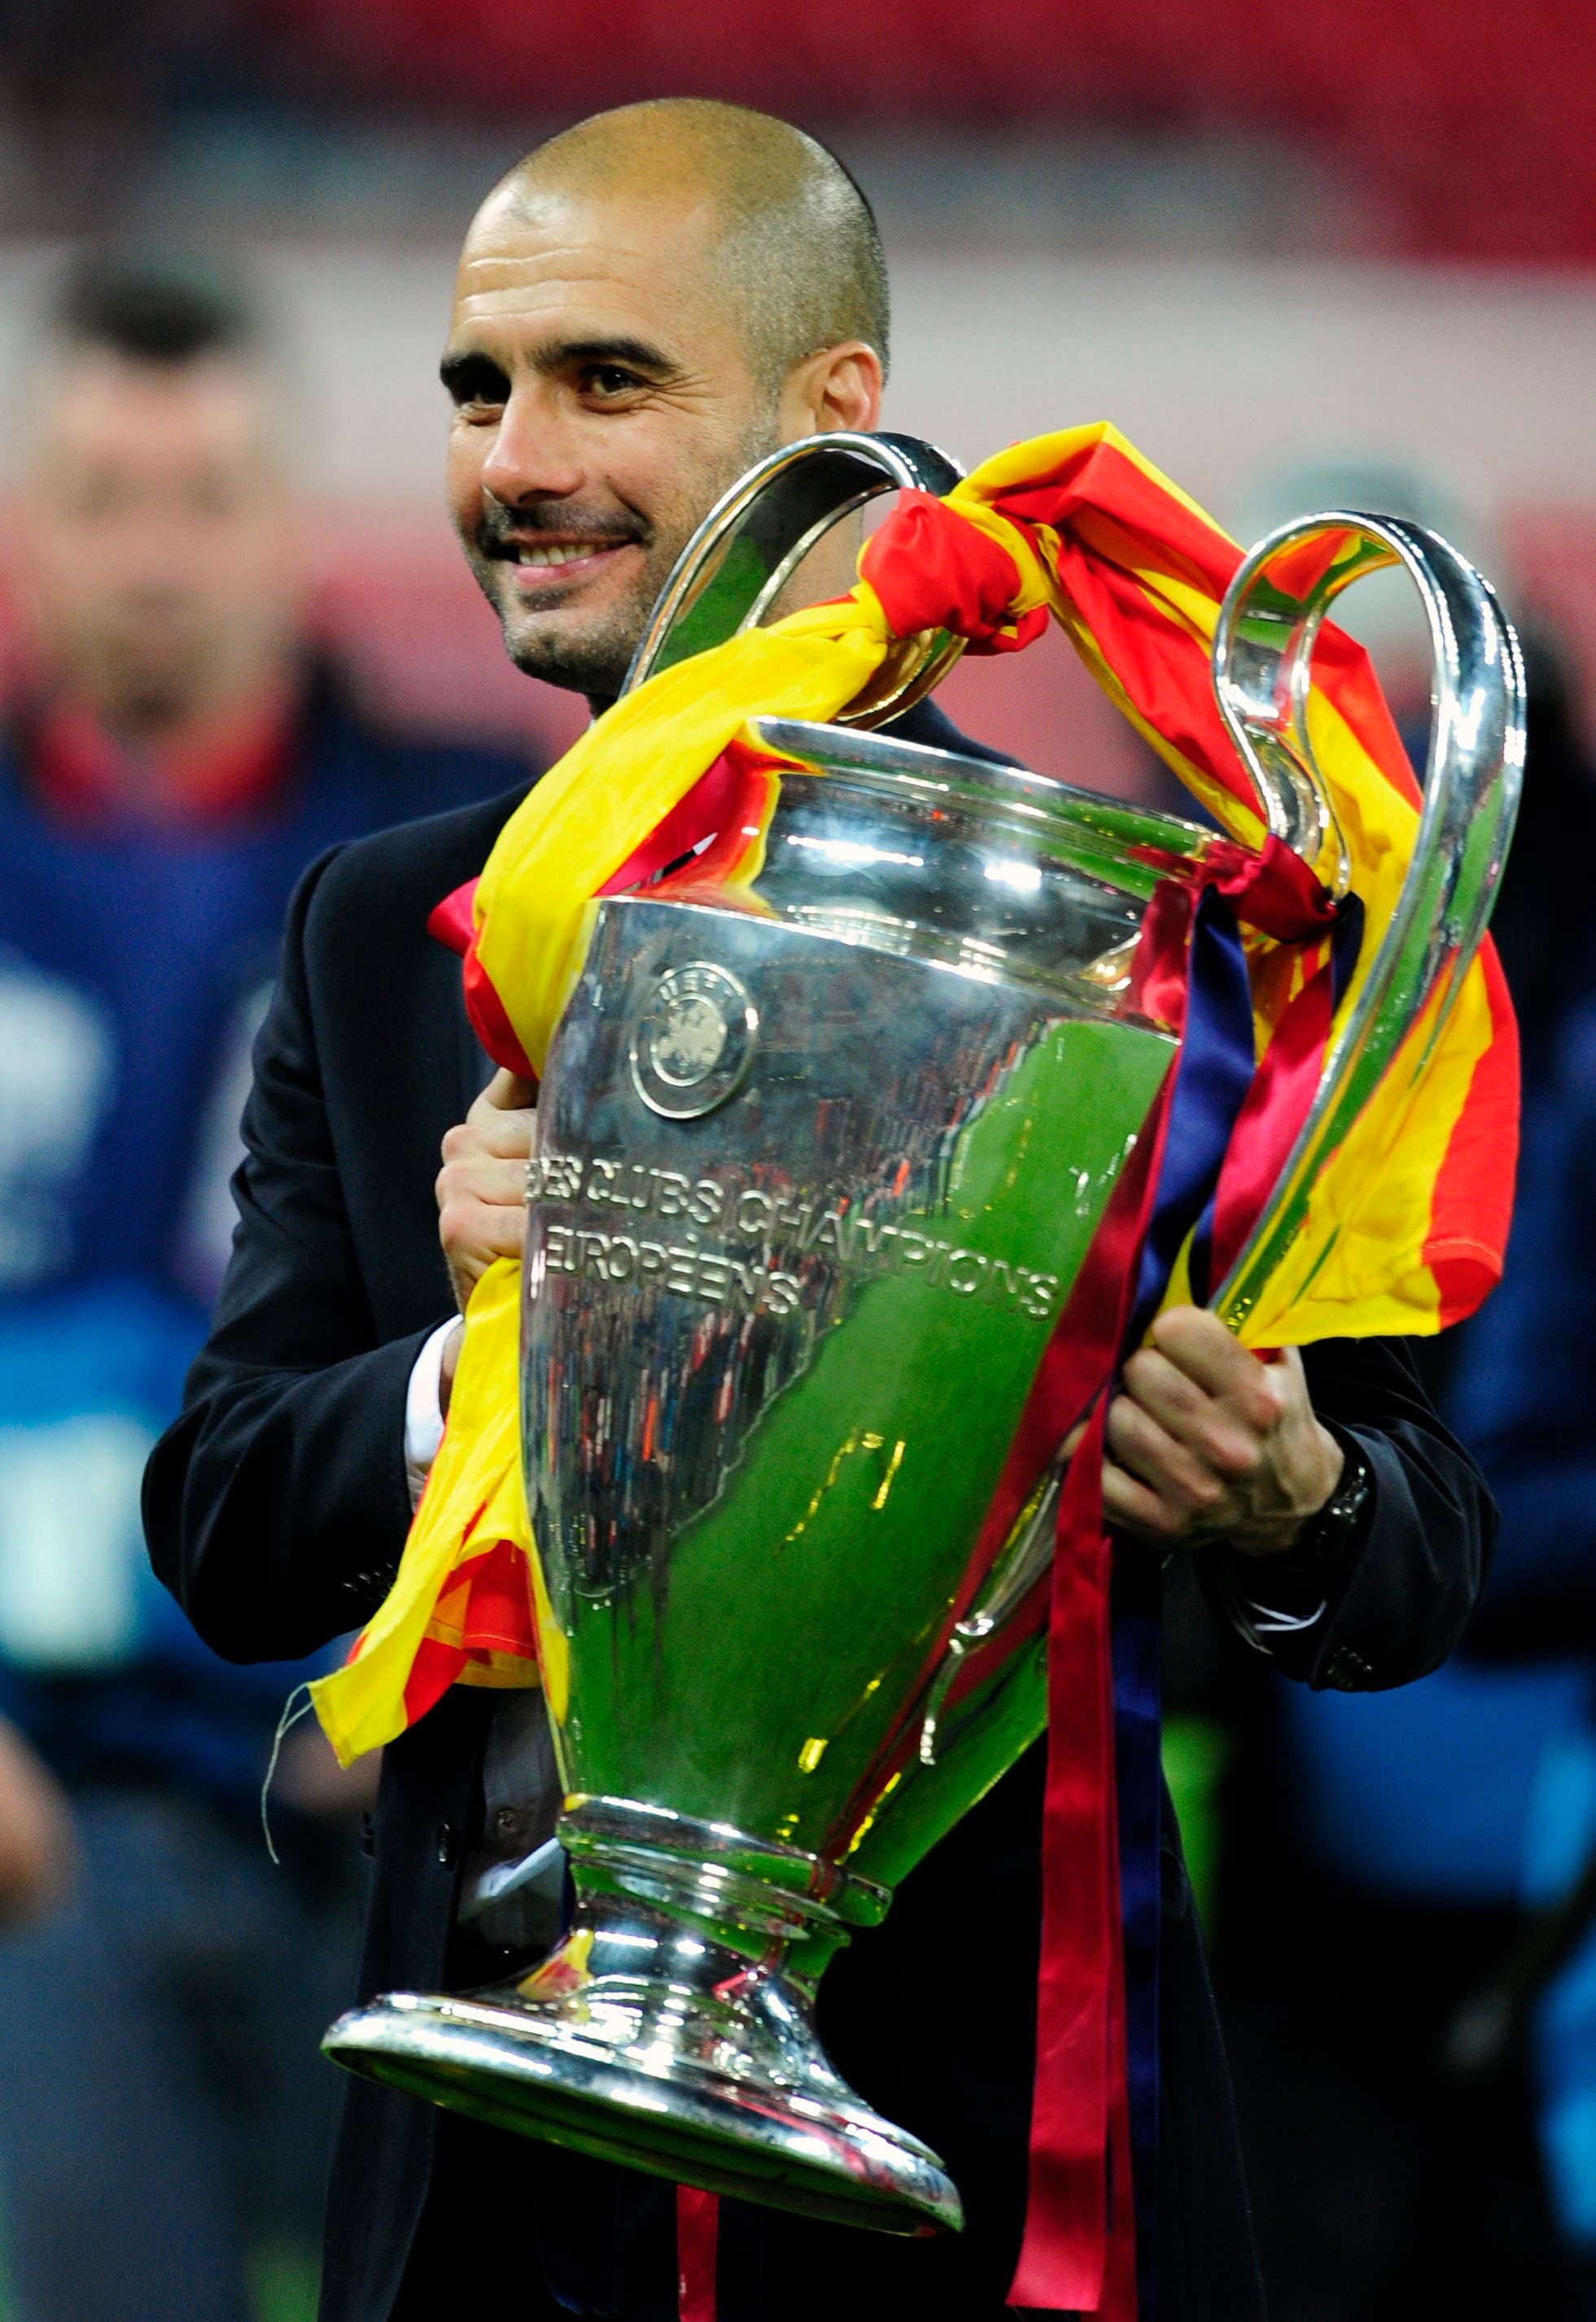 Barcelona's coach Pep Guardiola holds the trophy after winning the Champions League final soccer match against Manchester United at Wembley Stadium. (File Photo: AP)